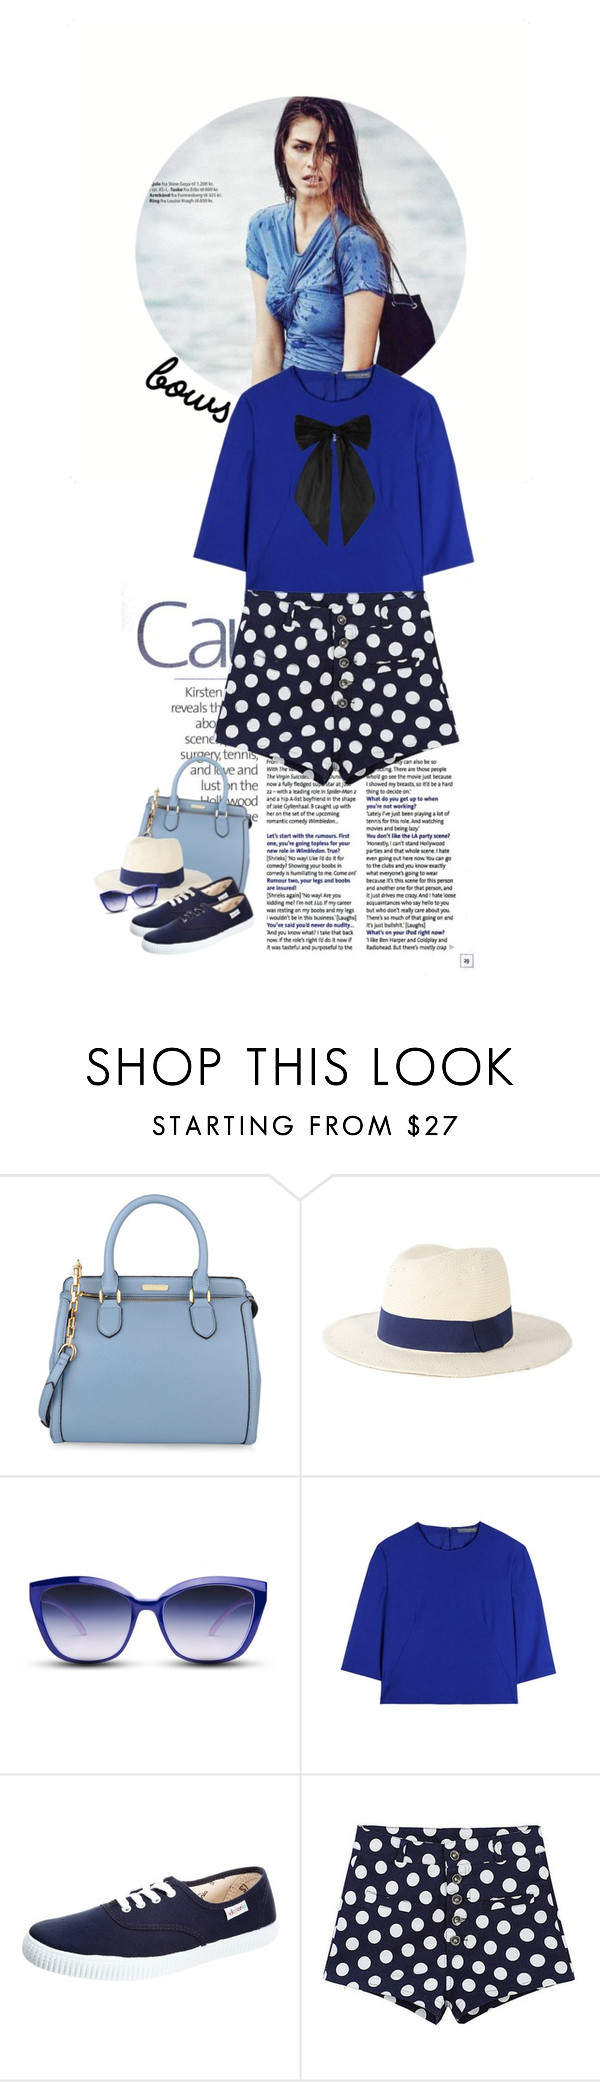 """Blue ."" by doris-knezevic ❤ liked on Polyvore featuring CHARLES & KEITH, Michael Stars, GlassesUSA, Alexander McQueen, Victoria Shoes and Oscar de la Renta"